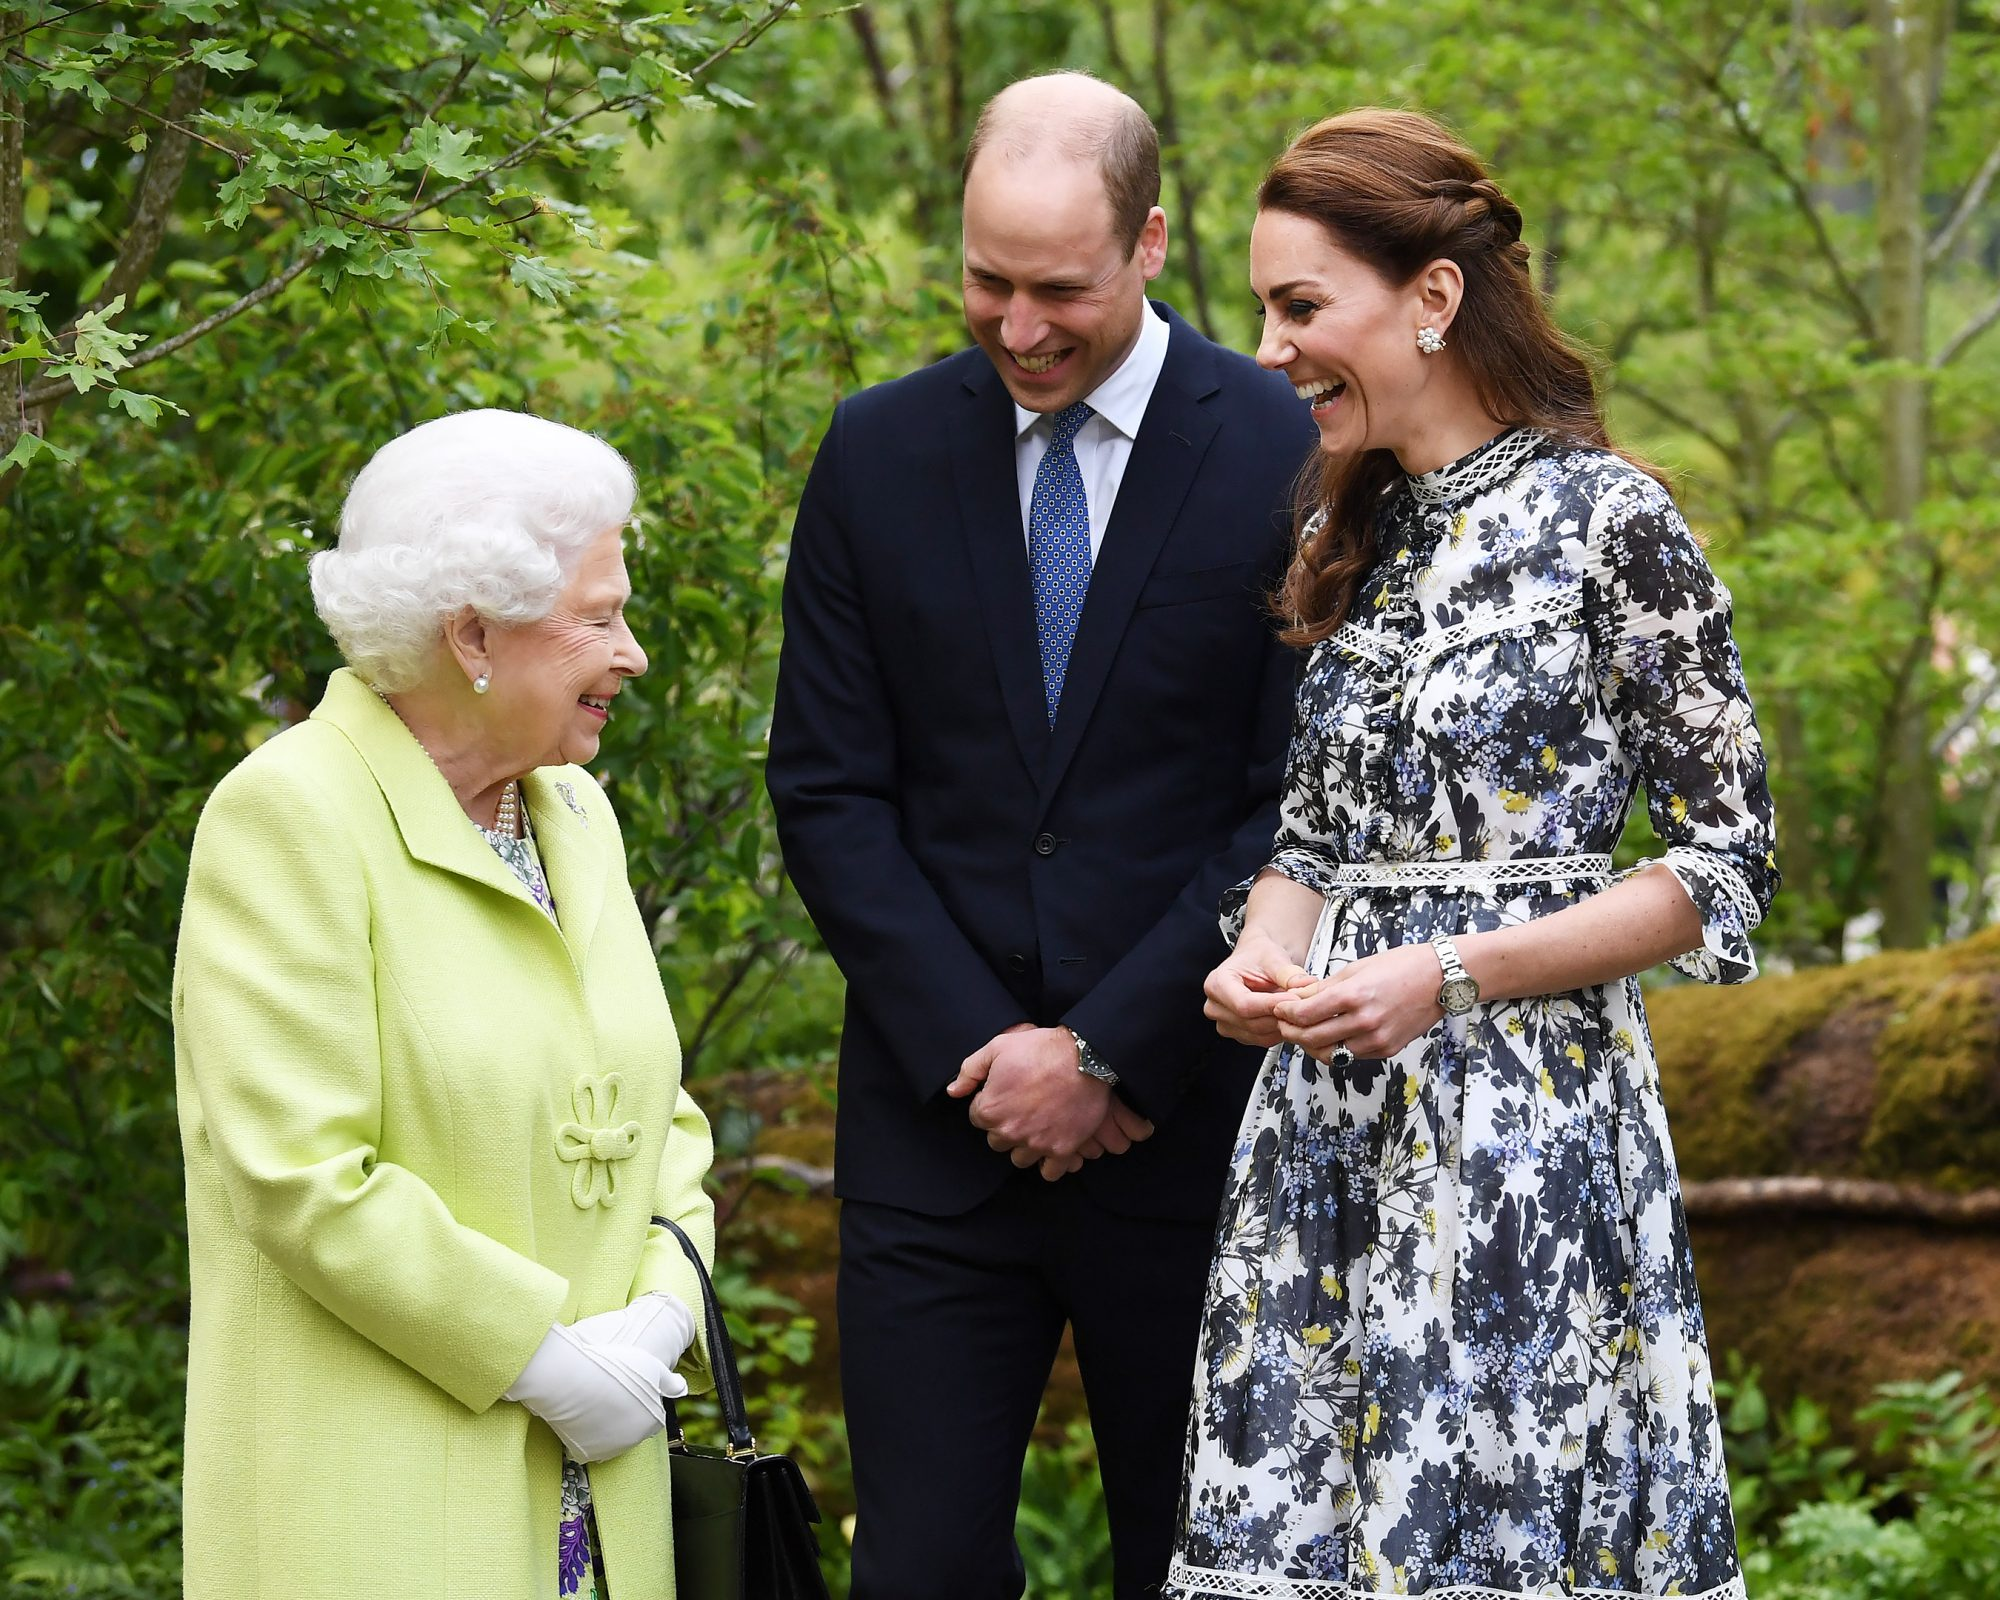 Kate Middleton Shows Queen Elizabeth Her New Garden: See the Queen and Future Queen Together!